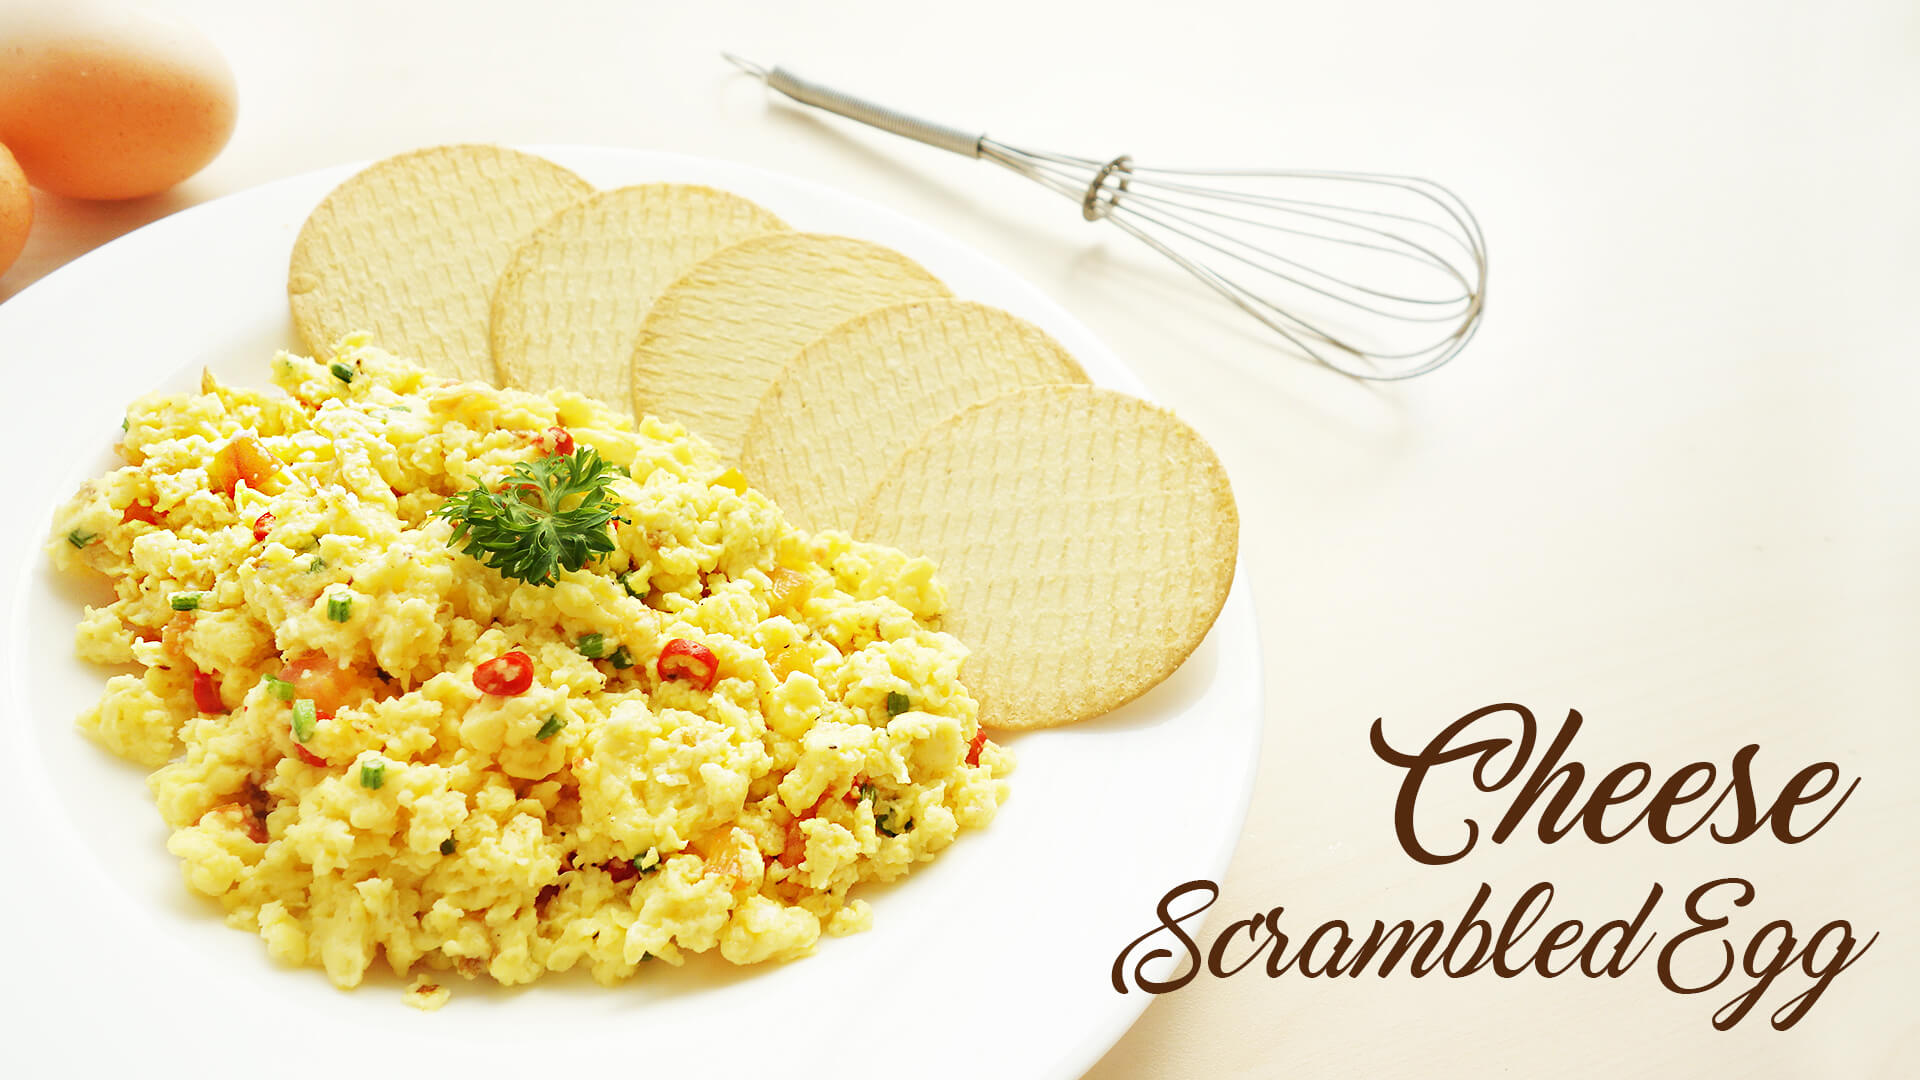 Cheese_Scrambled_Egg_2